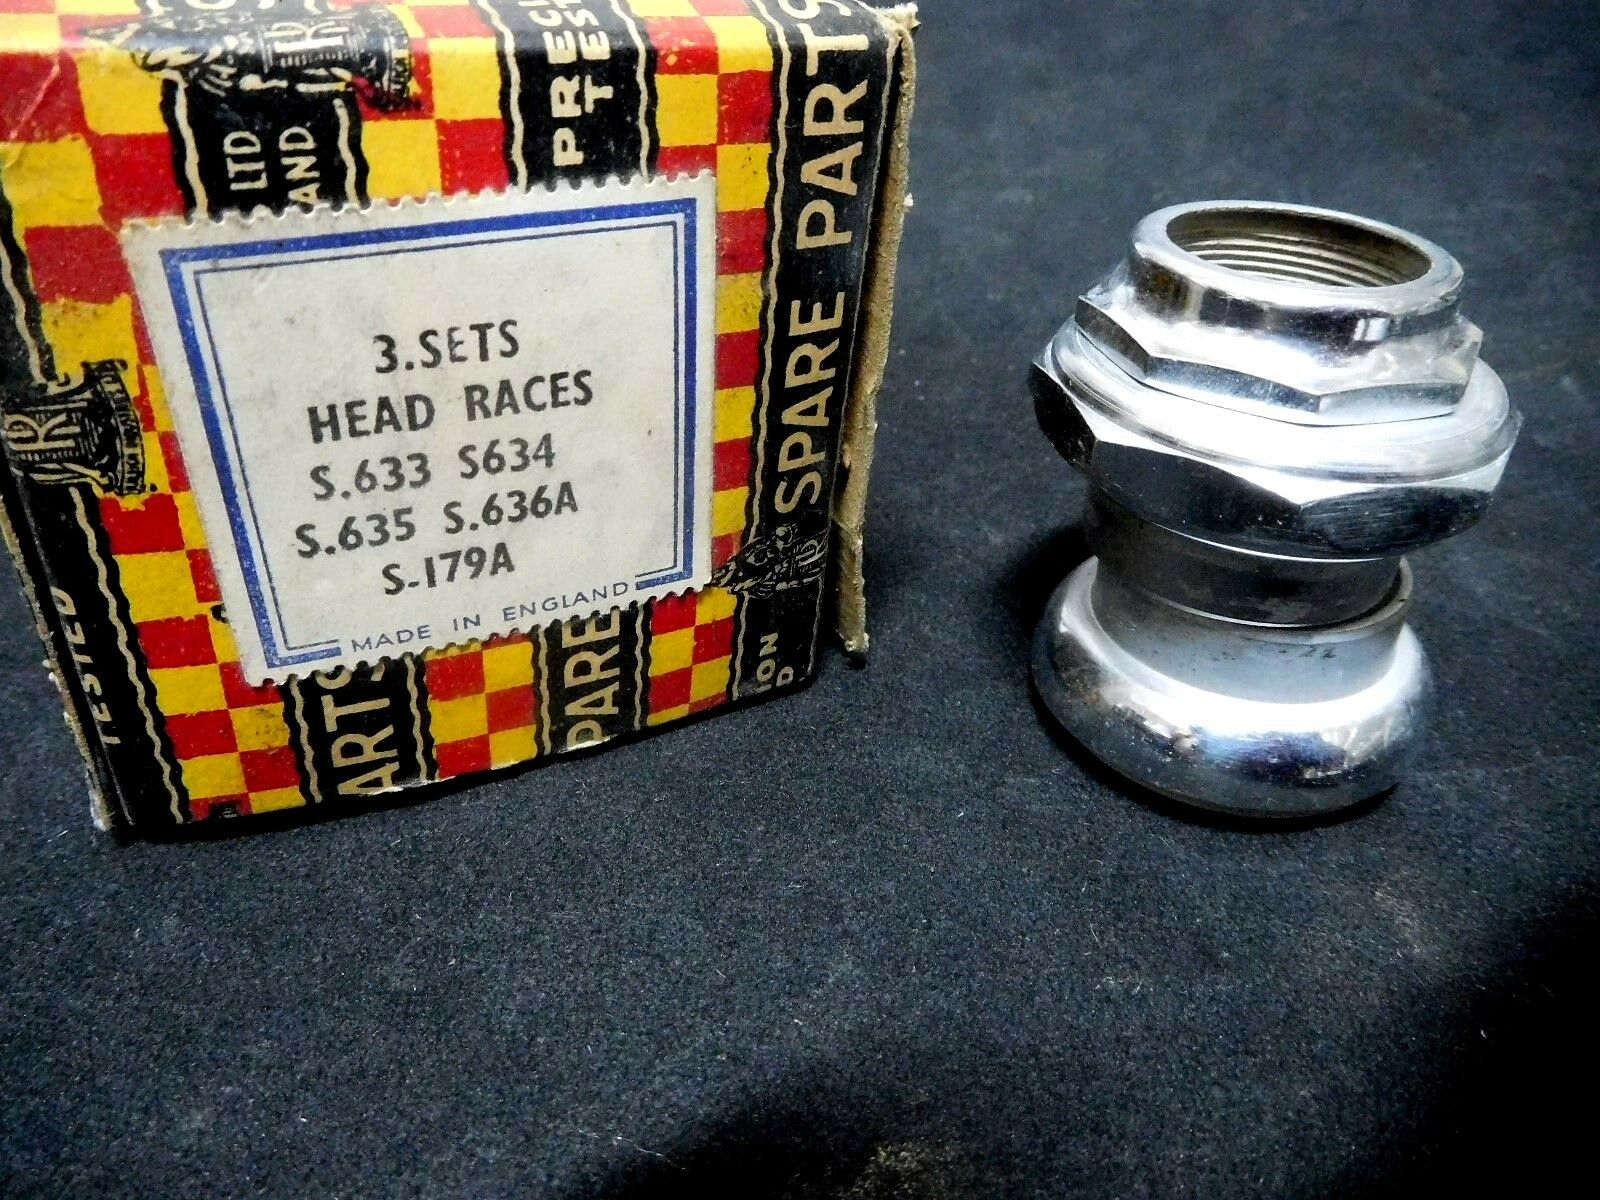 Vintage RALEIGH Bicycle  Head fittings 1  26 T.P.I NOS 1950s Set of 5 NOS  not to be missed!